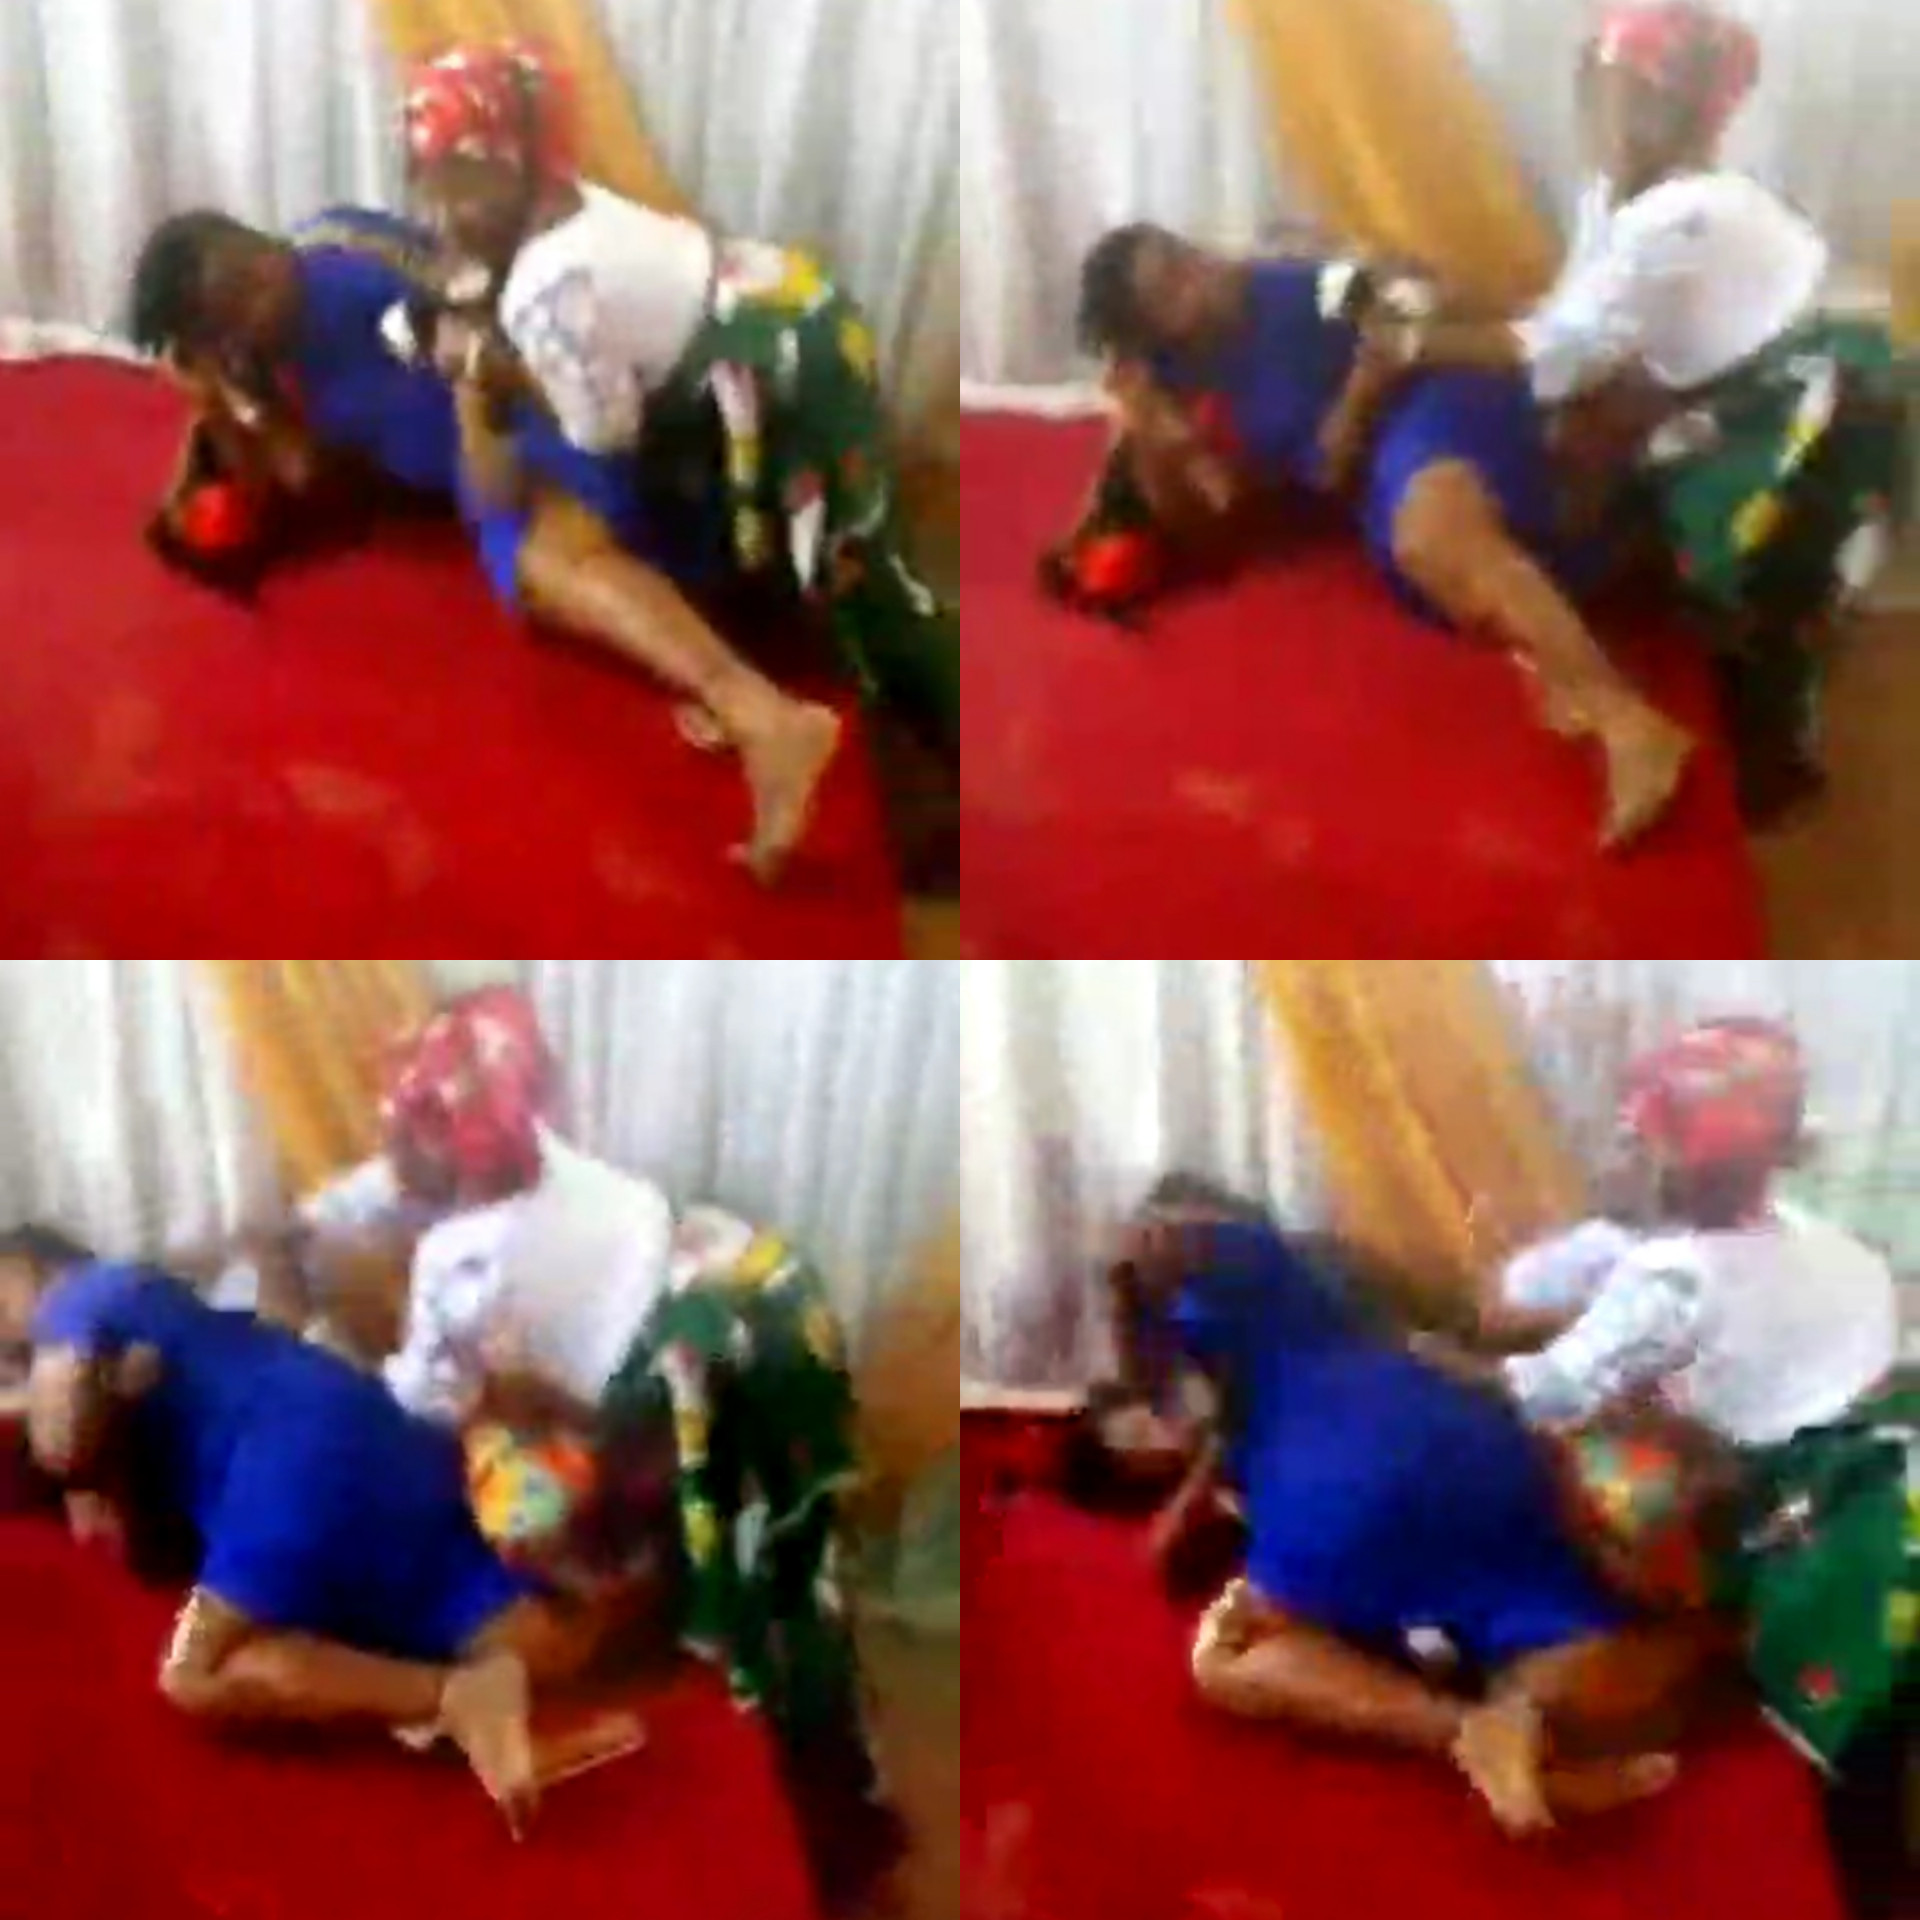 TRENDING VIDEO OF 'PASTOR'S WIFE AND A FEMALE MEMBER' FIGHT DIRTY INSIDE A CHURCH IN UMUAHIA (PHOTOS)